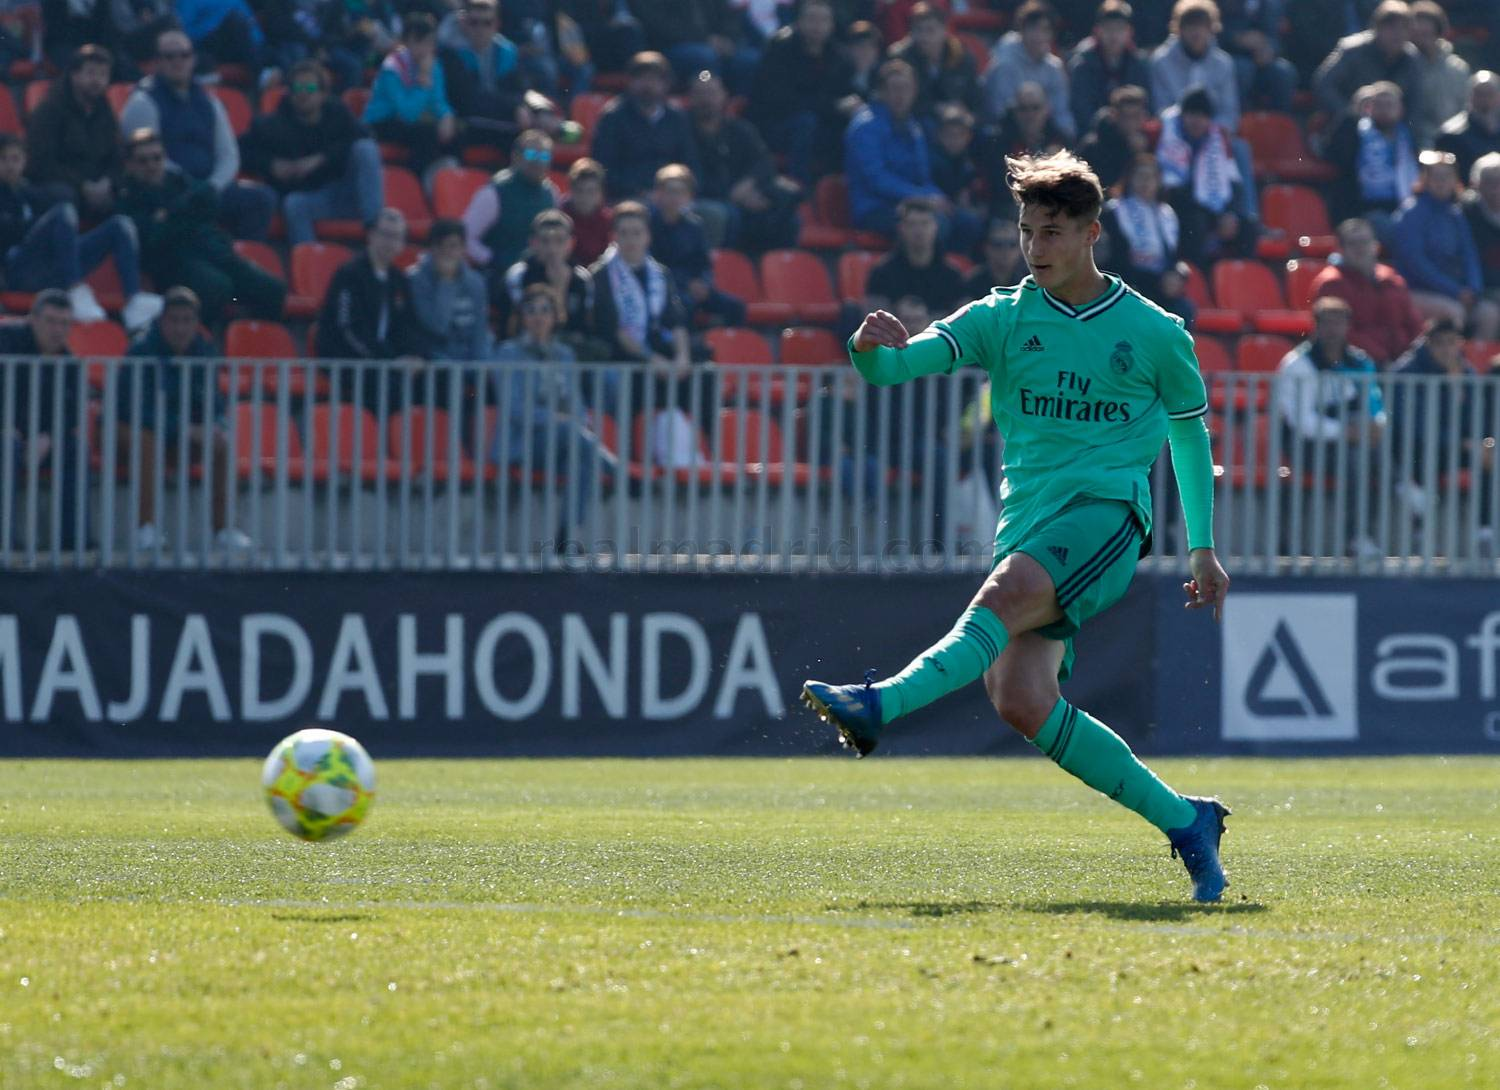 Real Madrid - Rayo Majadahonda - Real Madrid Castilla - 16-02-2020